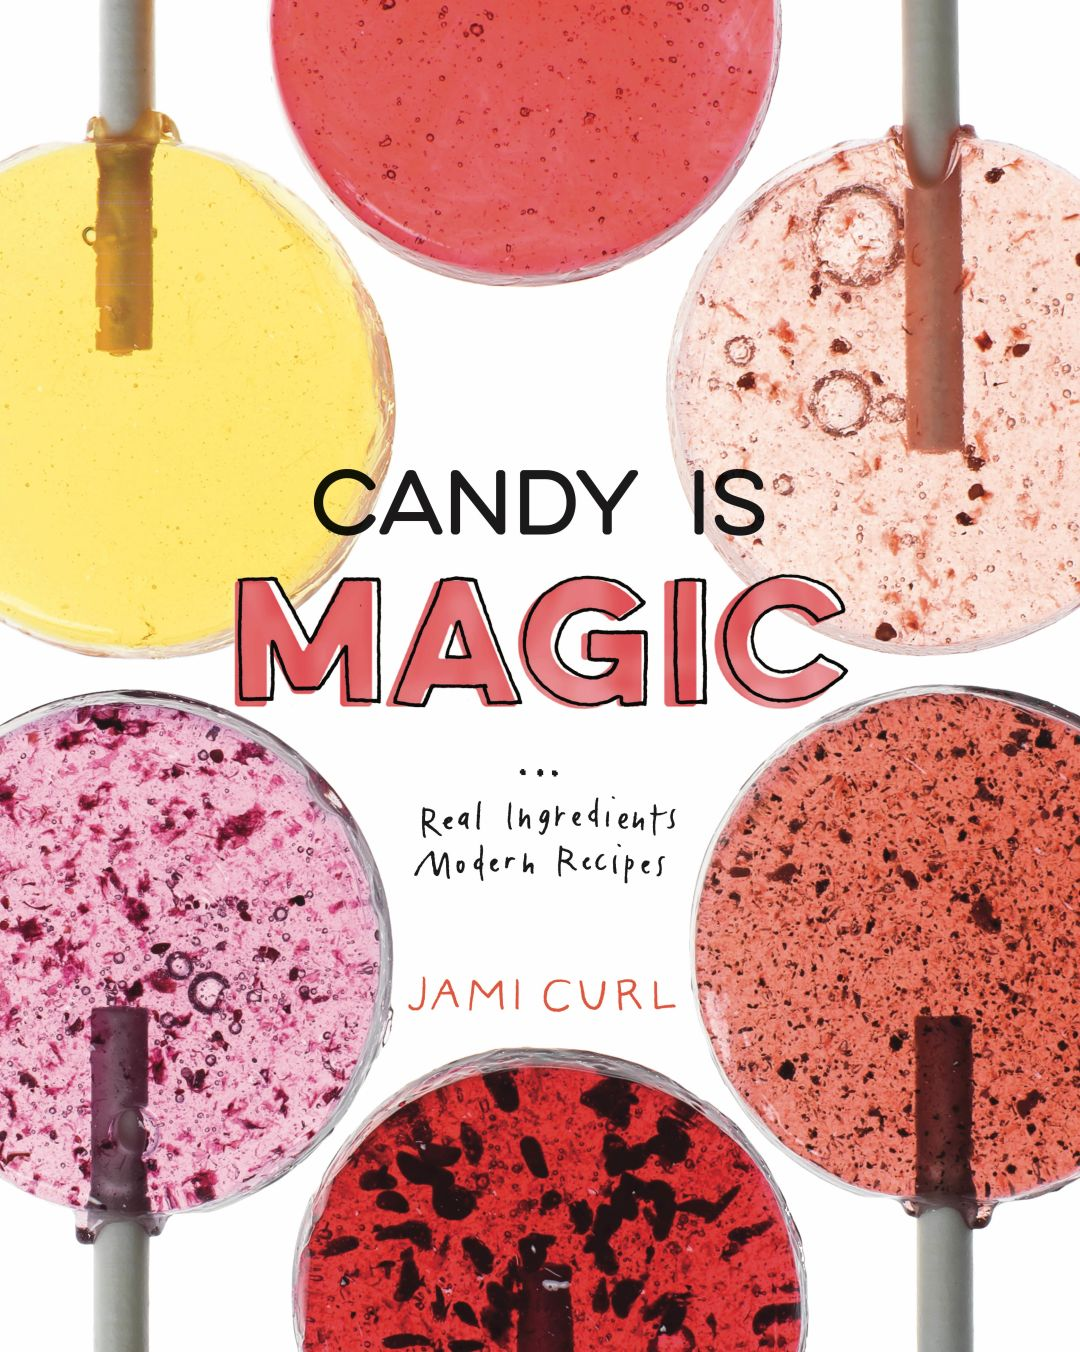 Candy is magic cover cropped smaller uouwwh